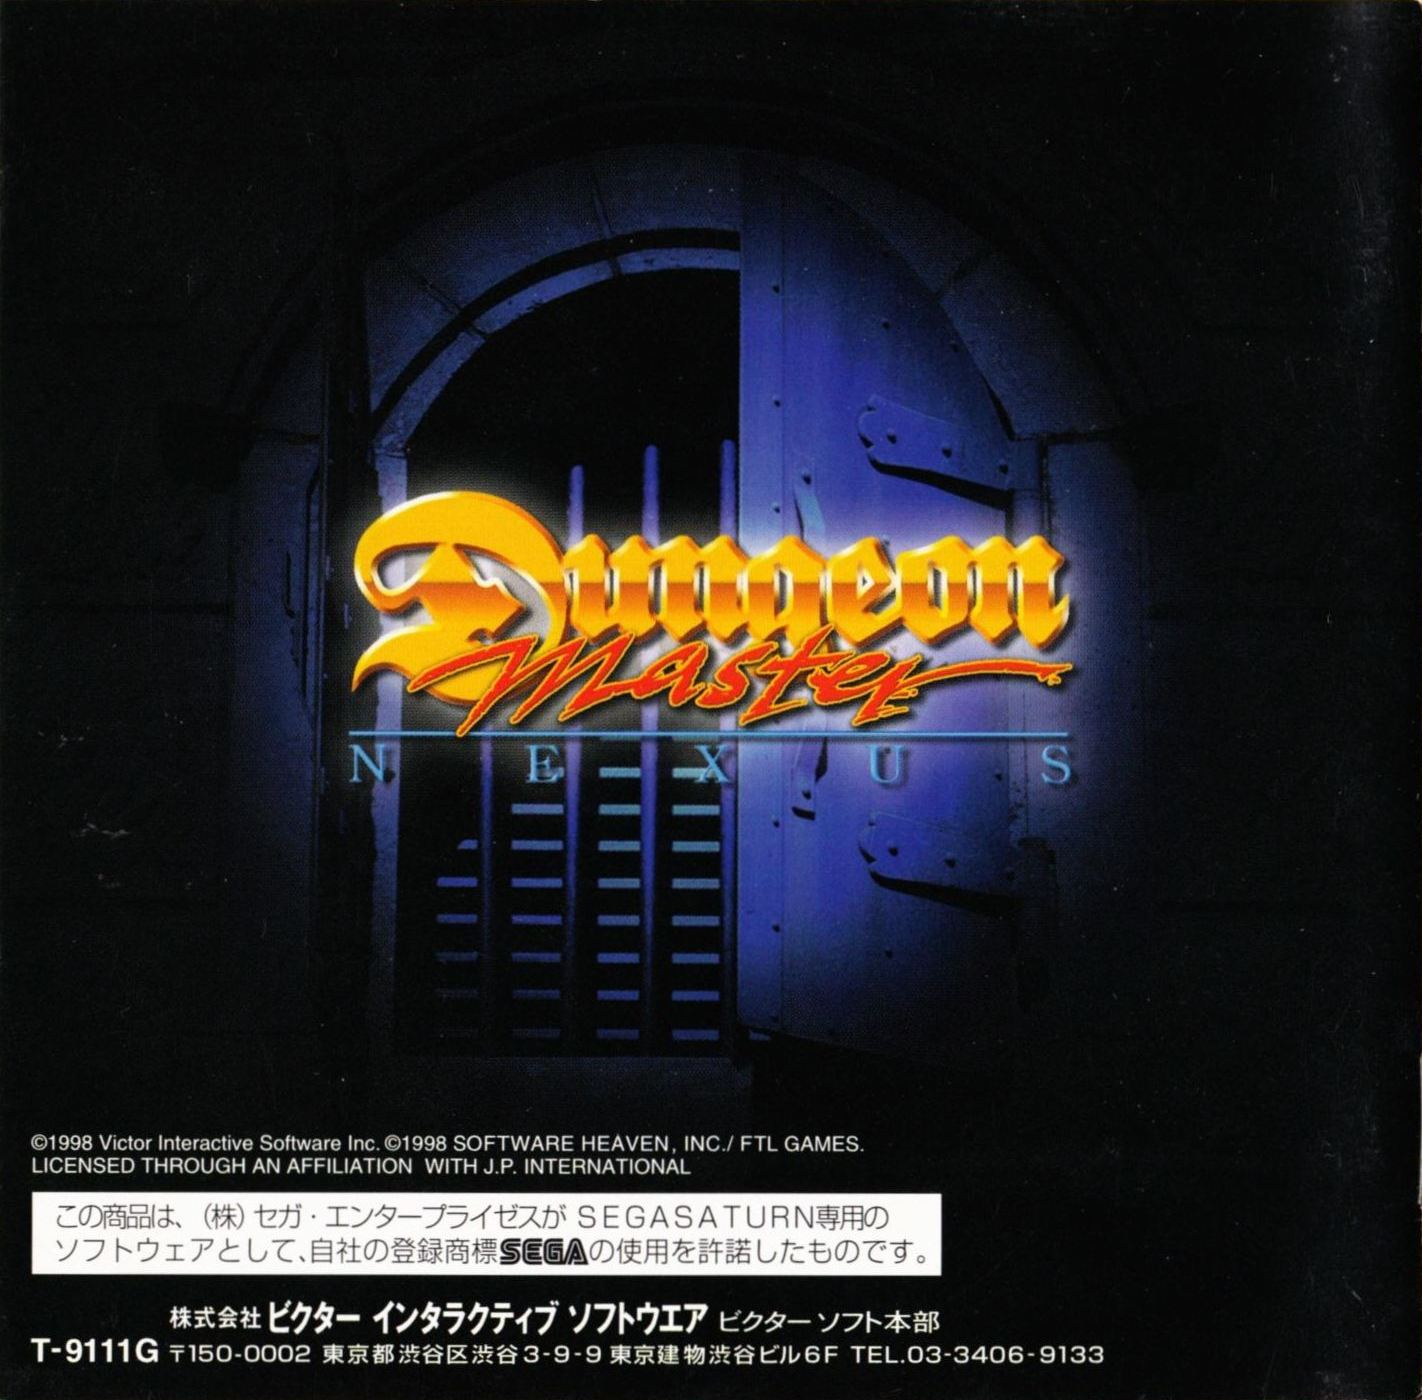 Game - Dungeon Master Nexus - JP - Sega Saturn - Booklet - Page 048 - Scan